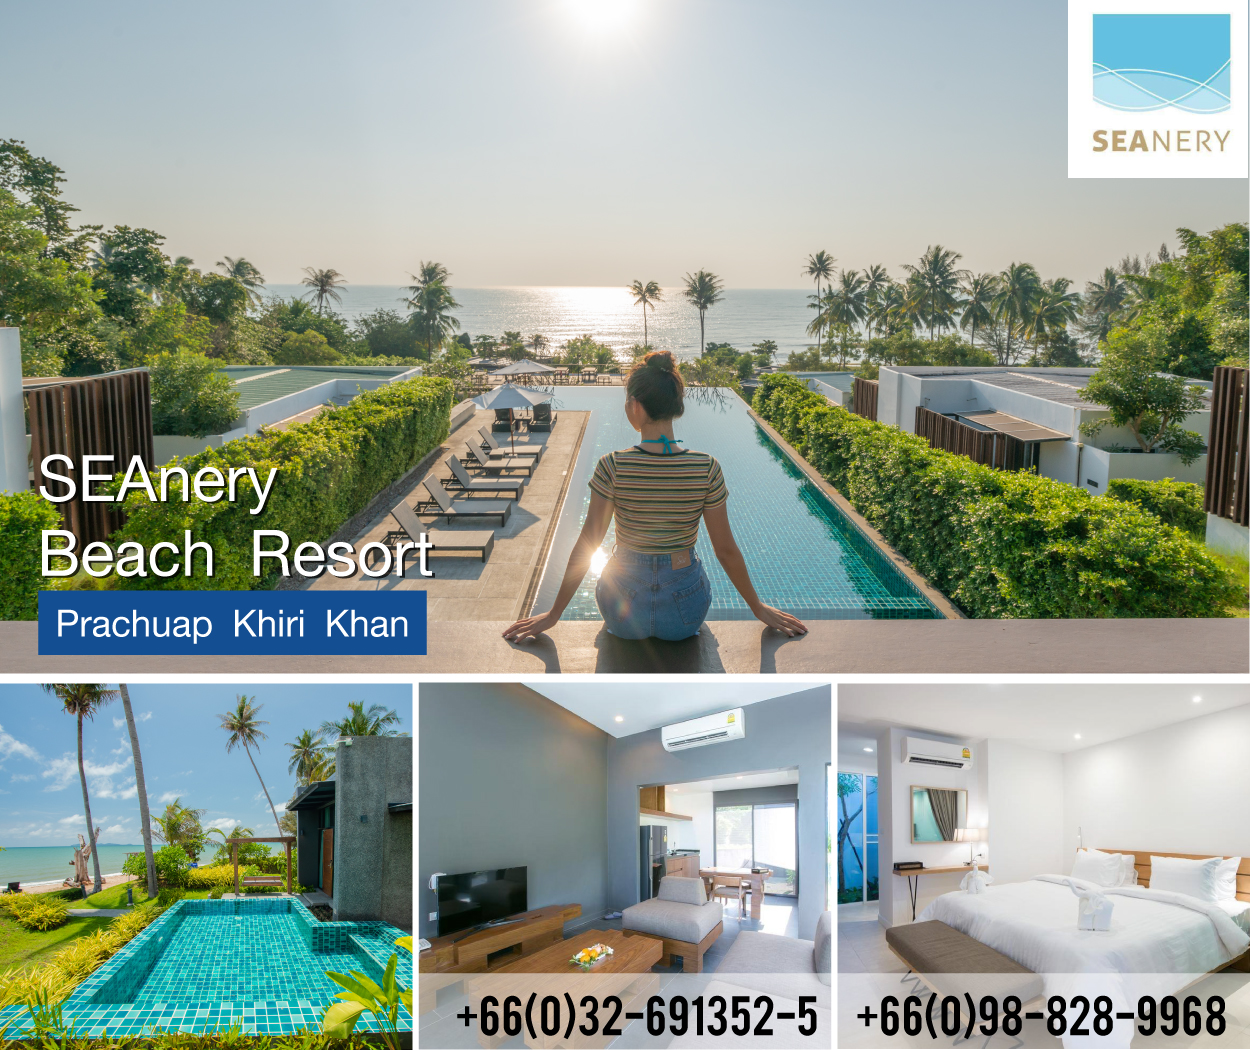 Seanery Beach Resort Prachuap Khiri Khan